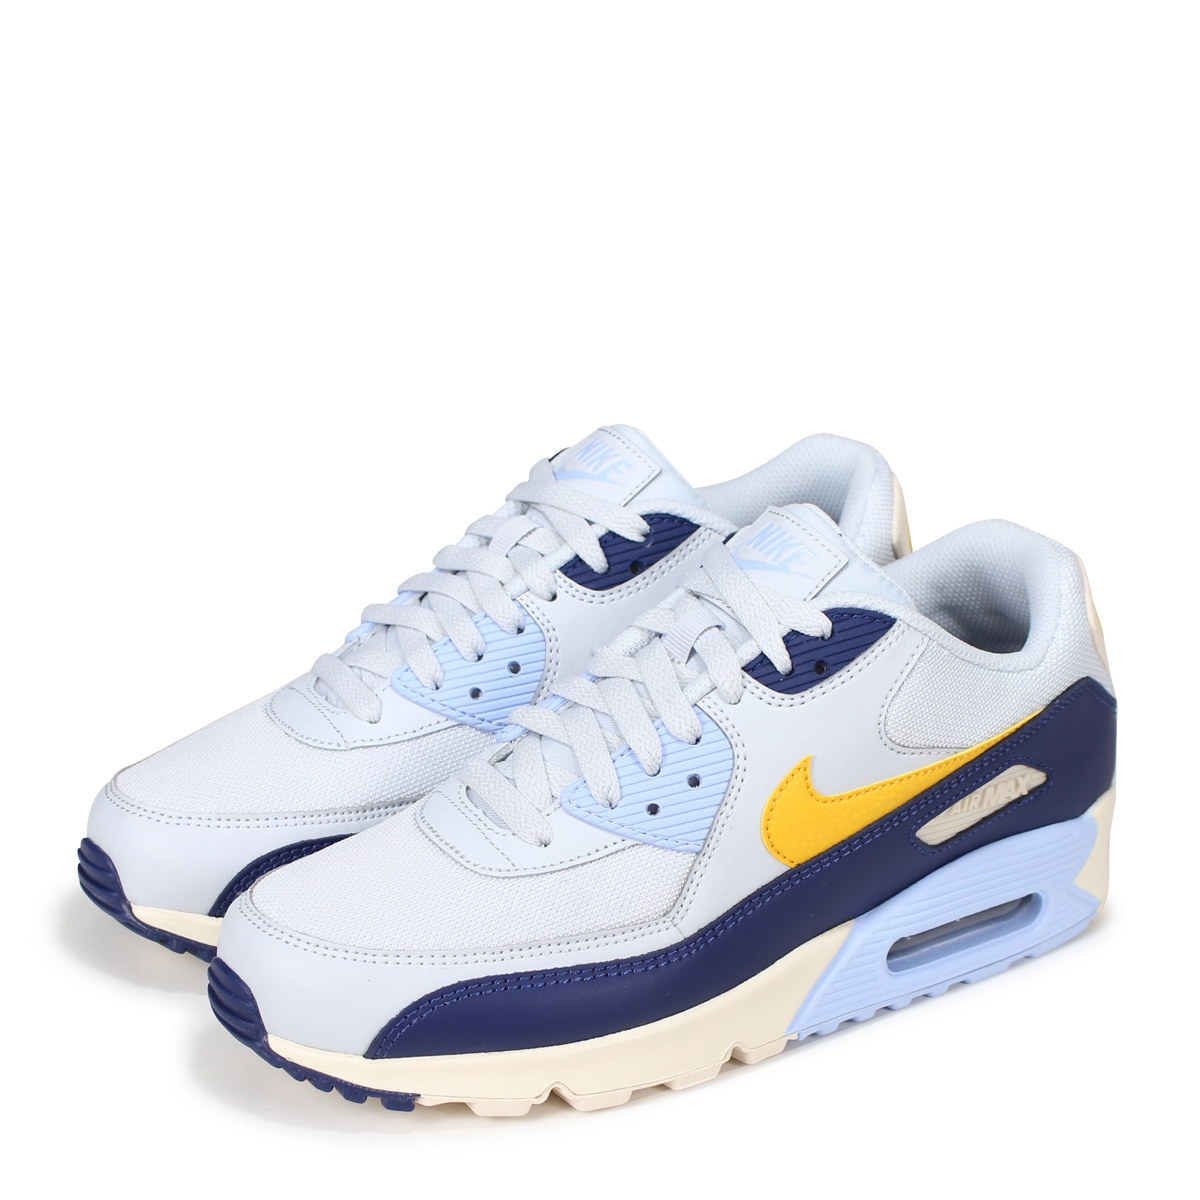 6a2034bc303c2 NIKE AIR MAX 90 ESSENTIAL Kie Ney AMAX 90 essential sneakers men AJ1285-008  blue  7 13 Shinnyu load   187